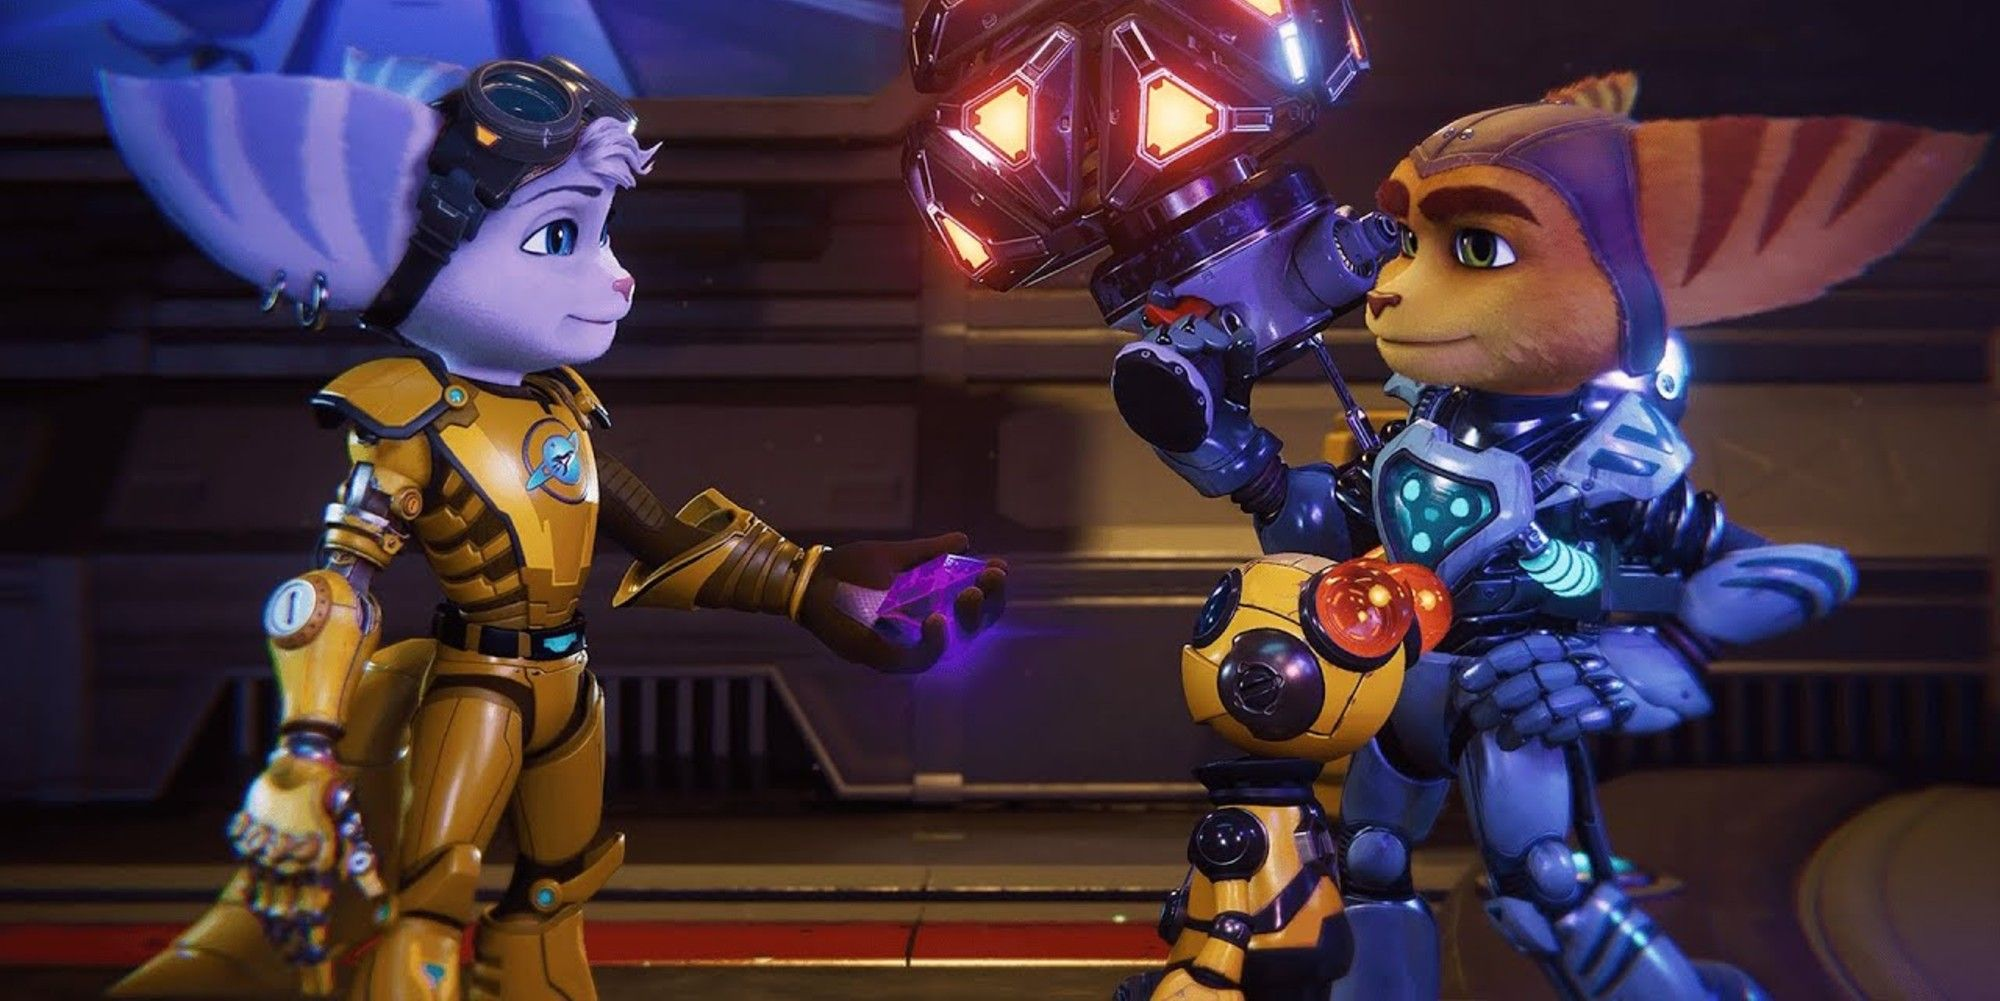 Ratchet & Clank: Rift Apart - Rivet And Kit Need Their Own Spinoff